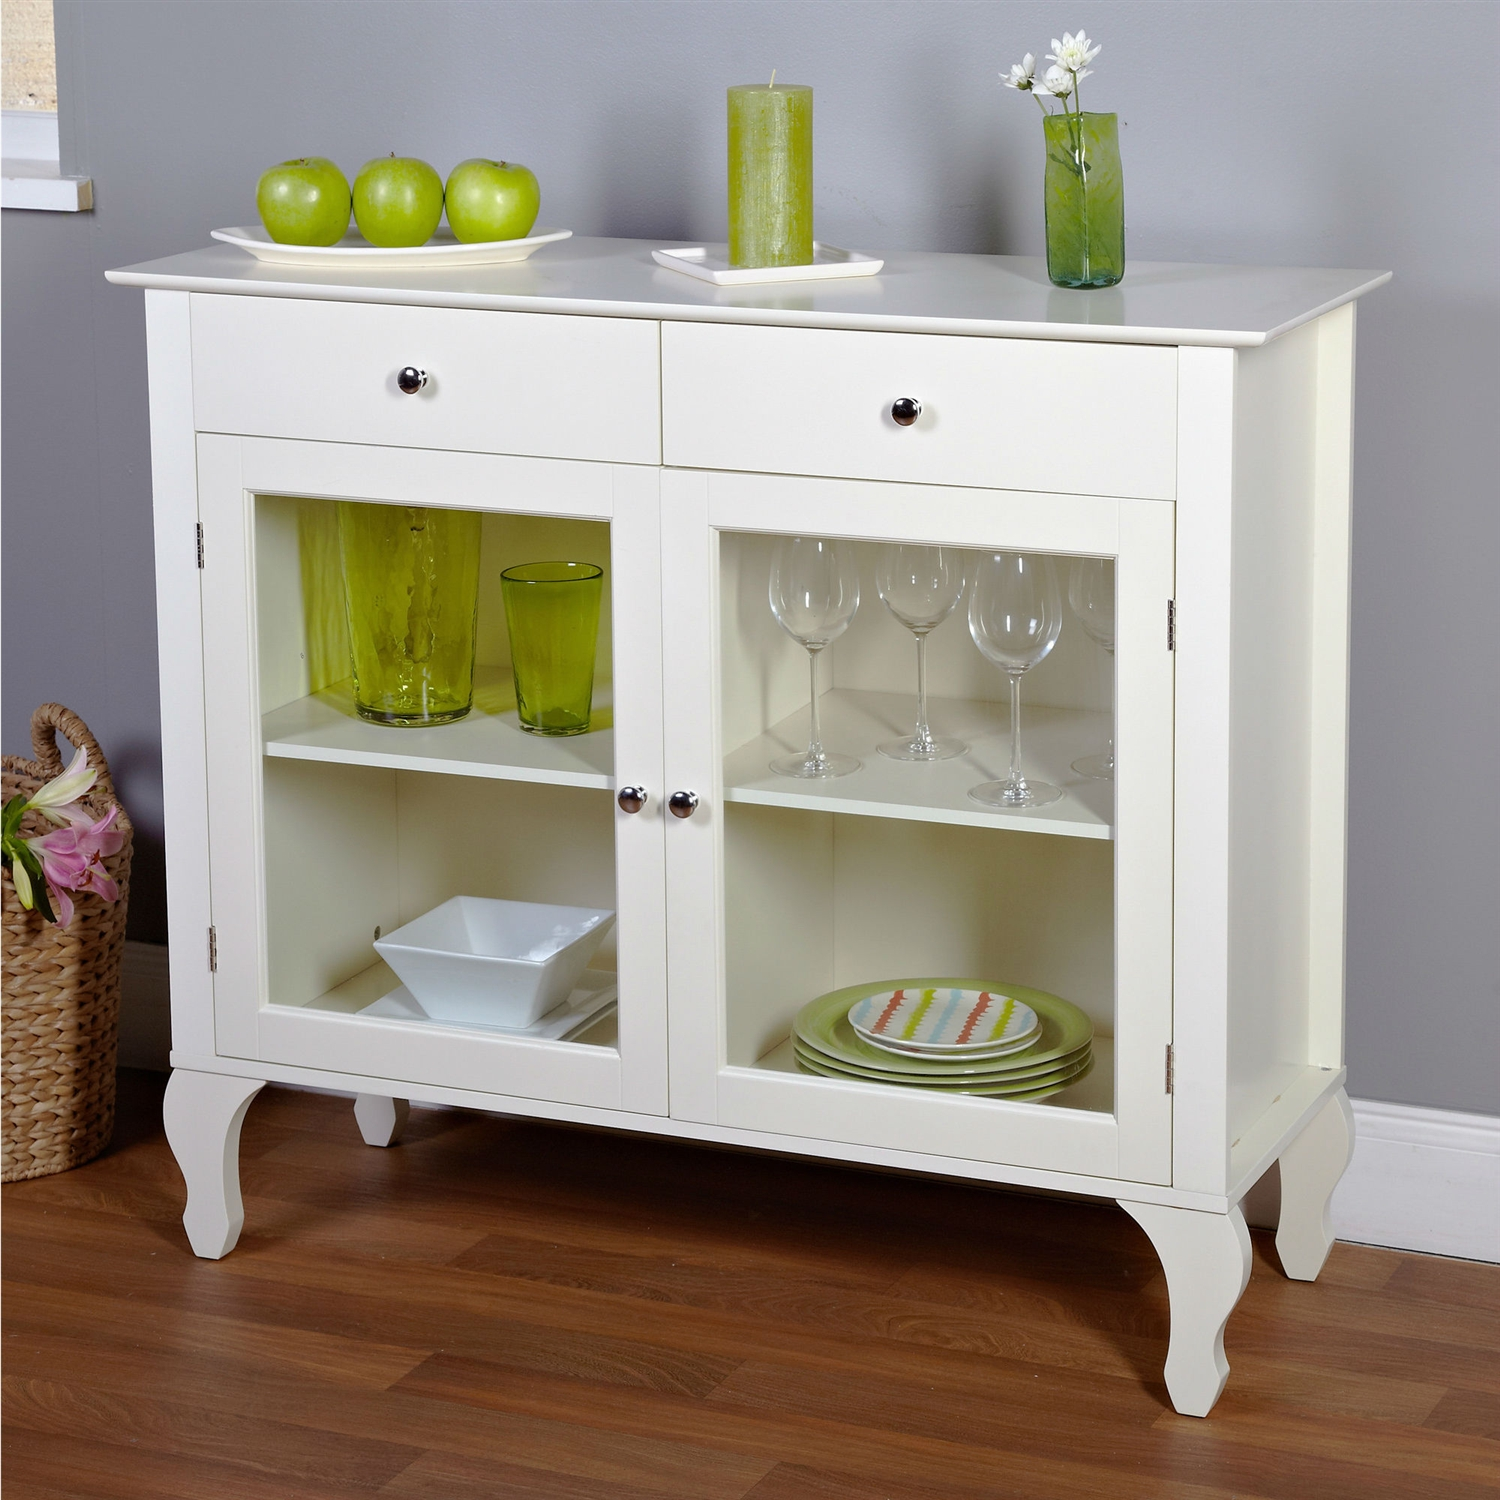 Vintage Kitchen Sideboard Antique White Sideboard Buffet Console Table With Glass Doors